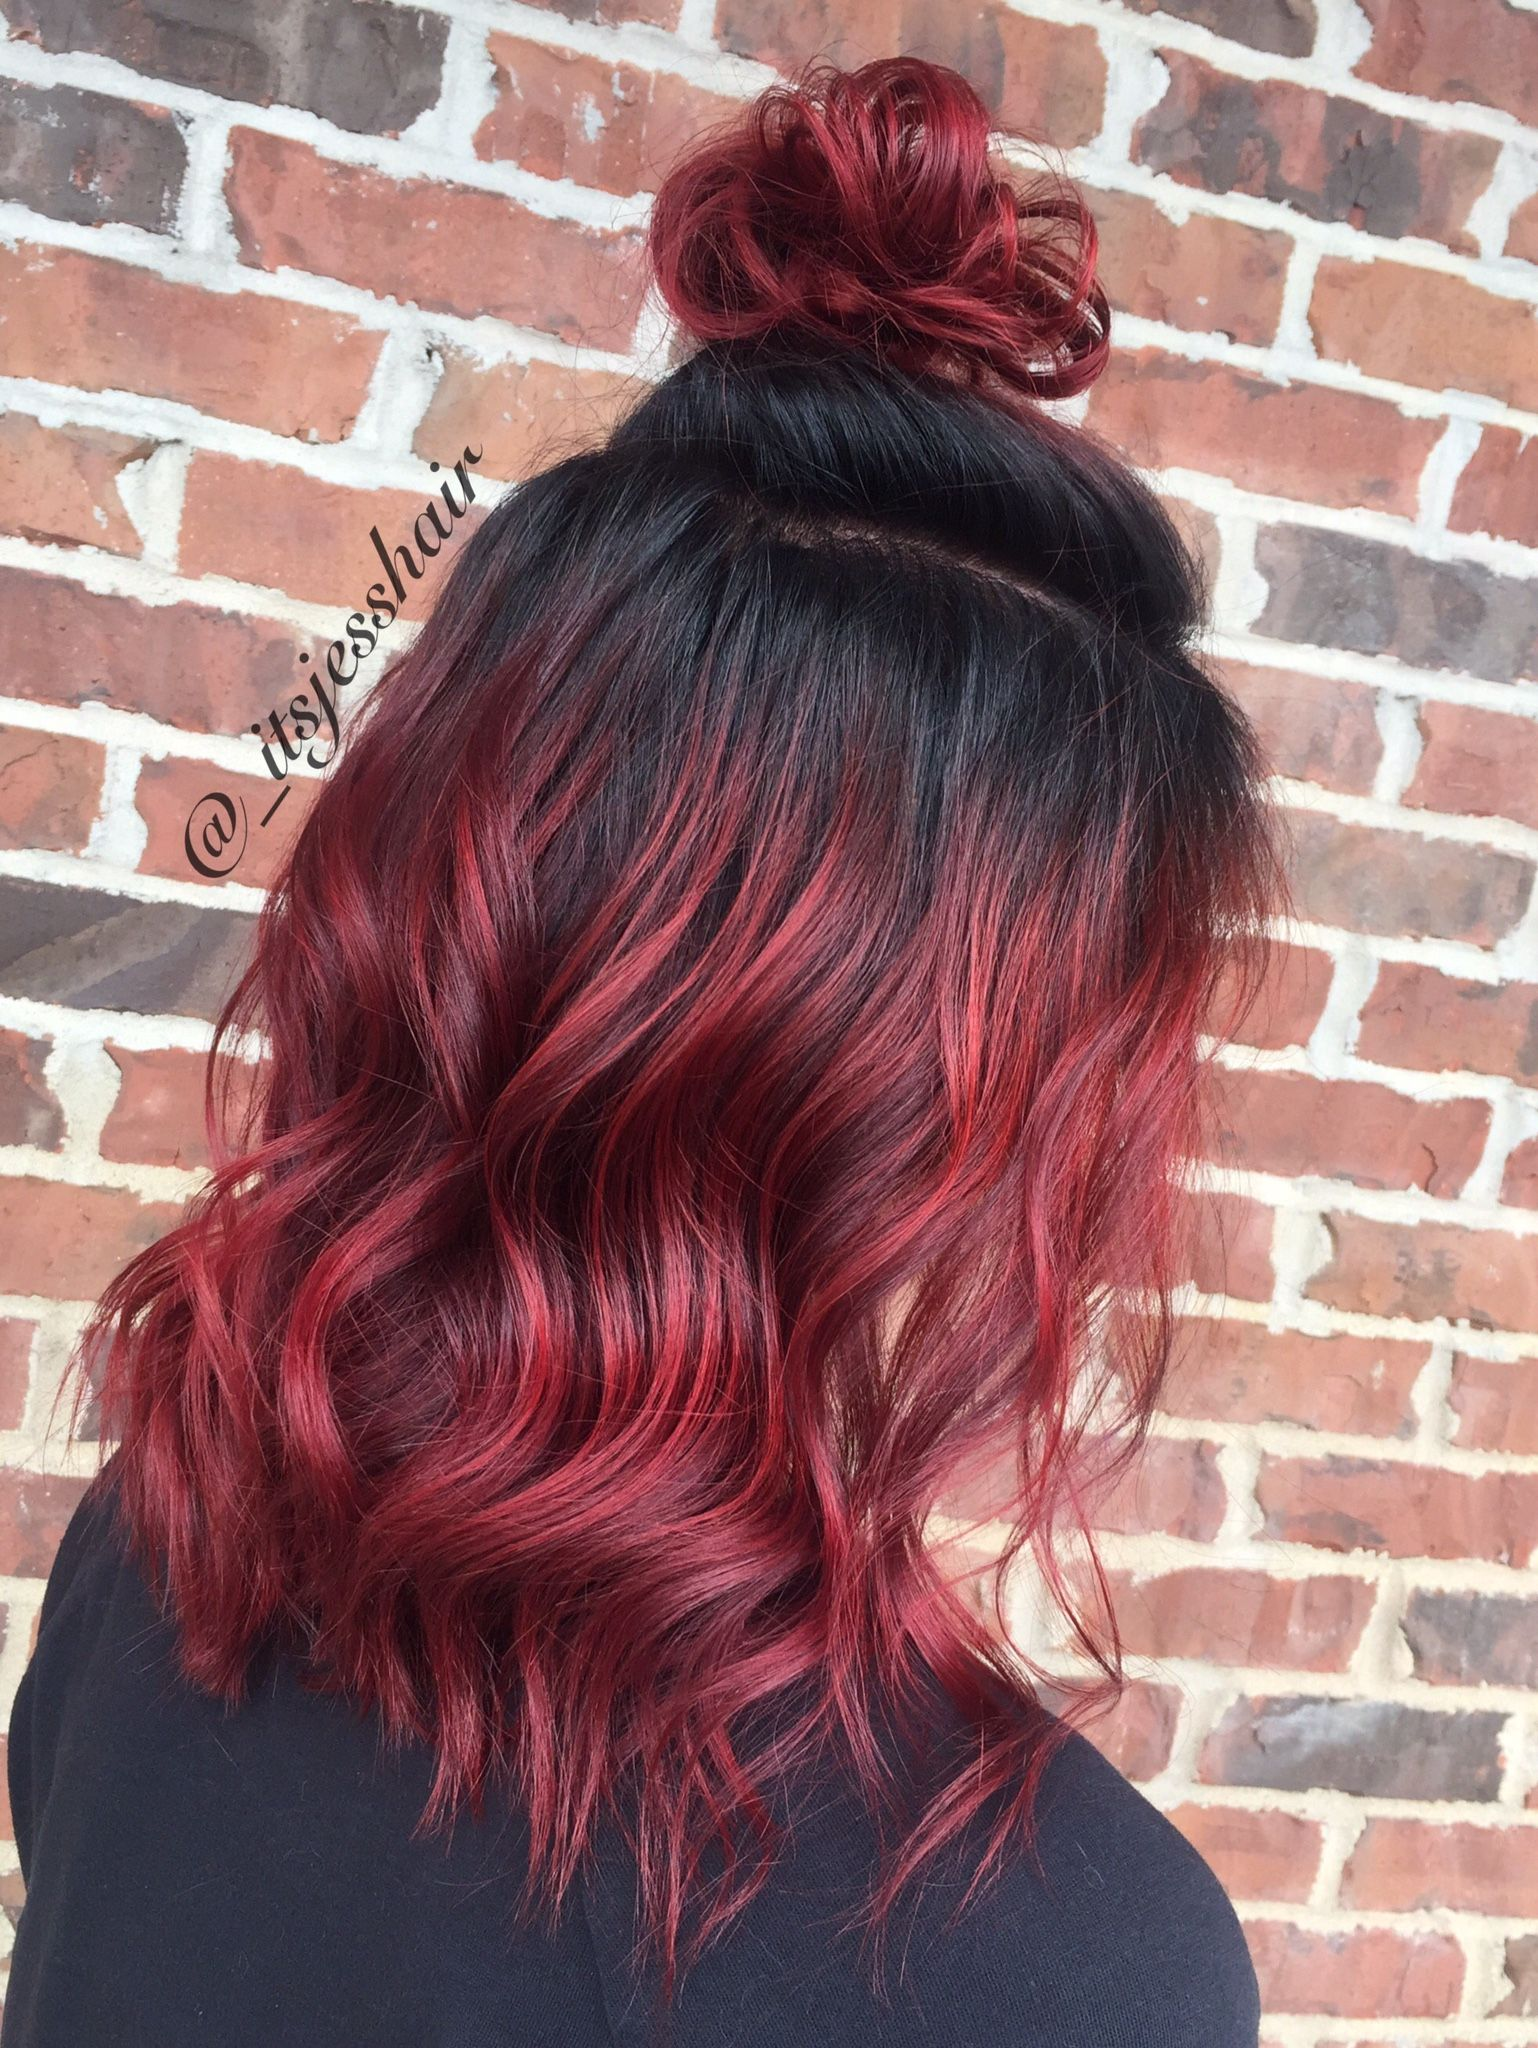 bayalage redbayalage shadowroot hairstyle Red bayalage Shadow